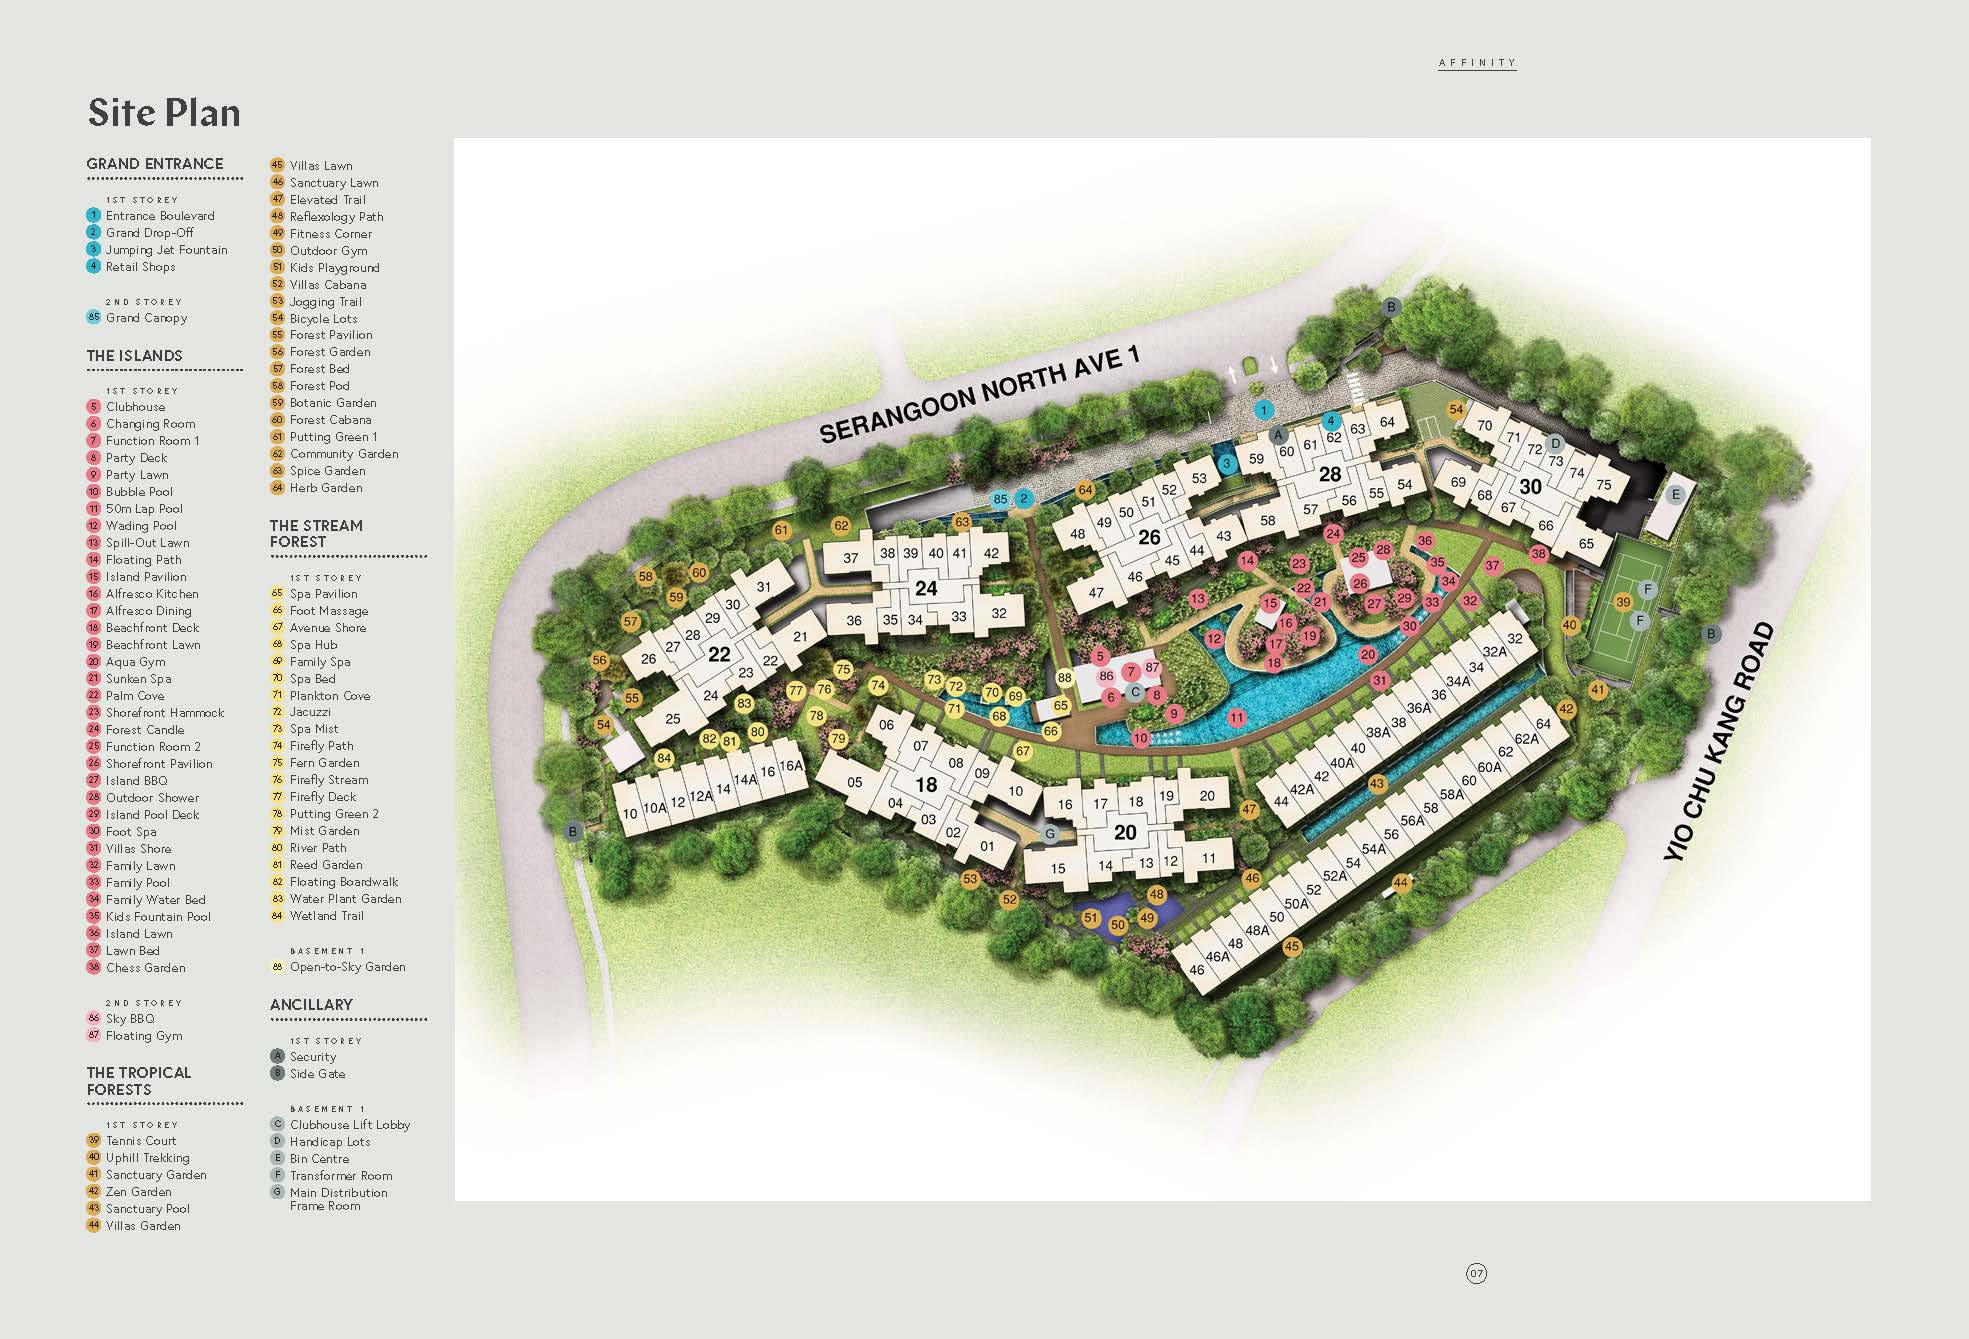 affinity-at-serangoon-site-plan